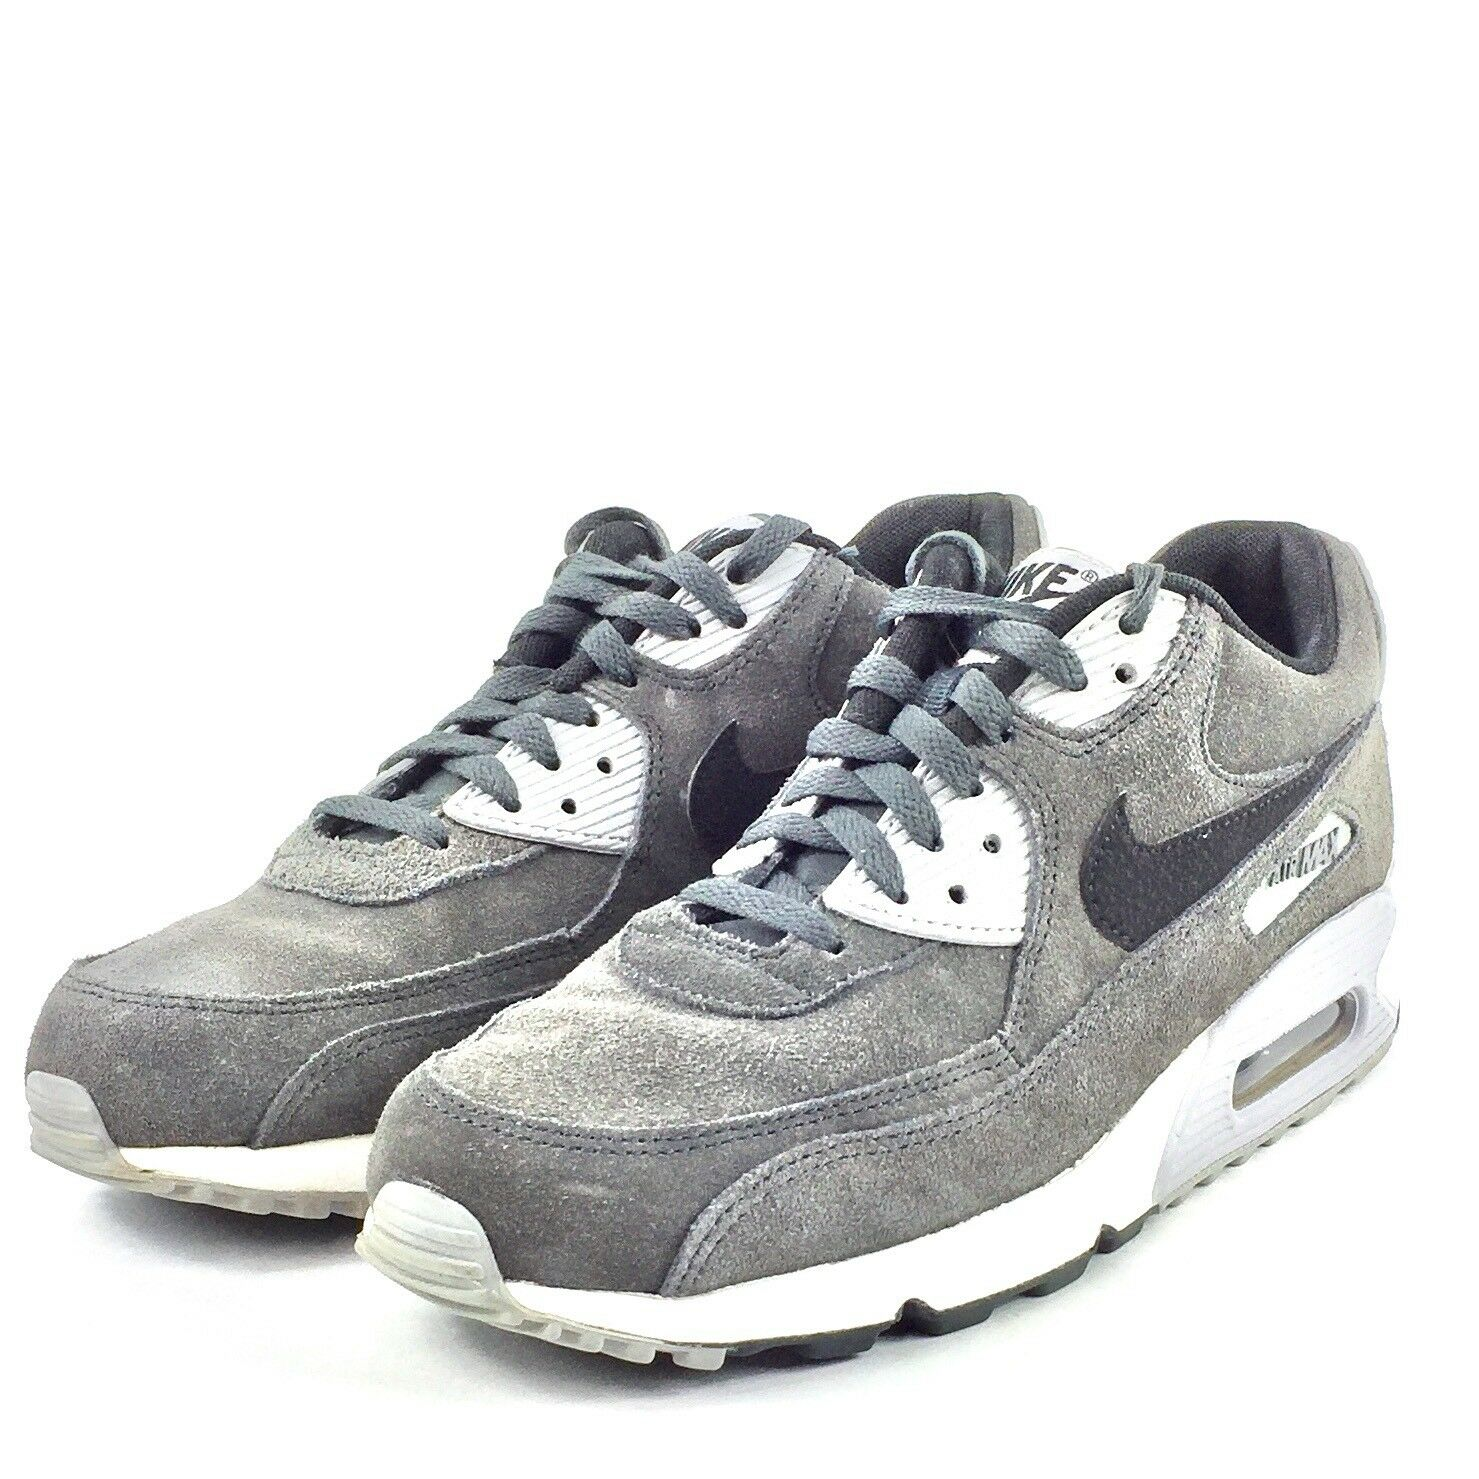 Nike Air Max 90 Mens Running Shoes Wolf Grey Suede 652980 012 Sz 8